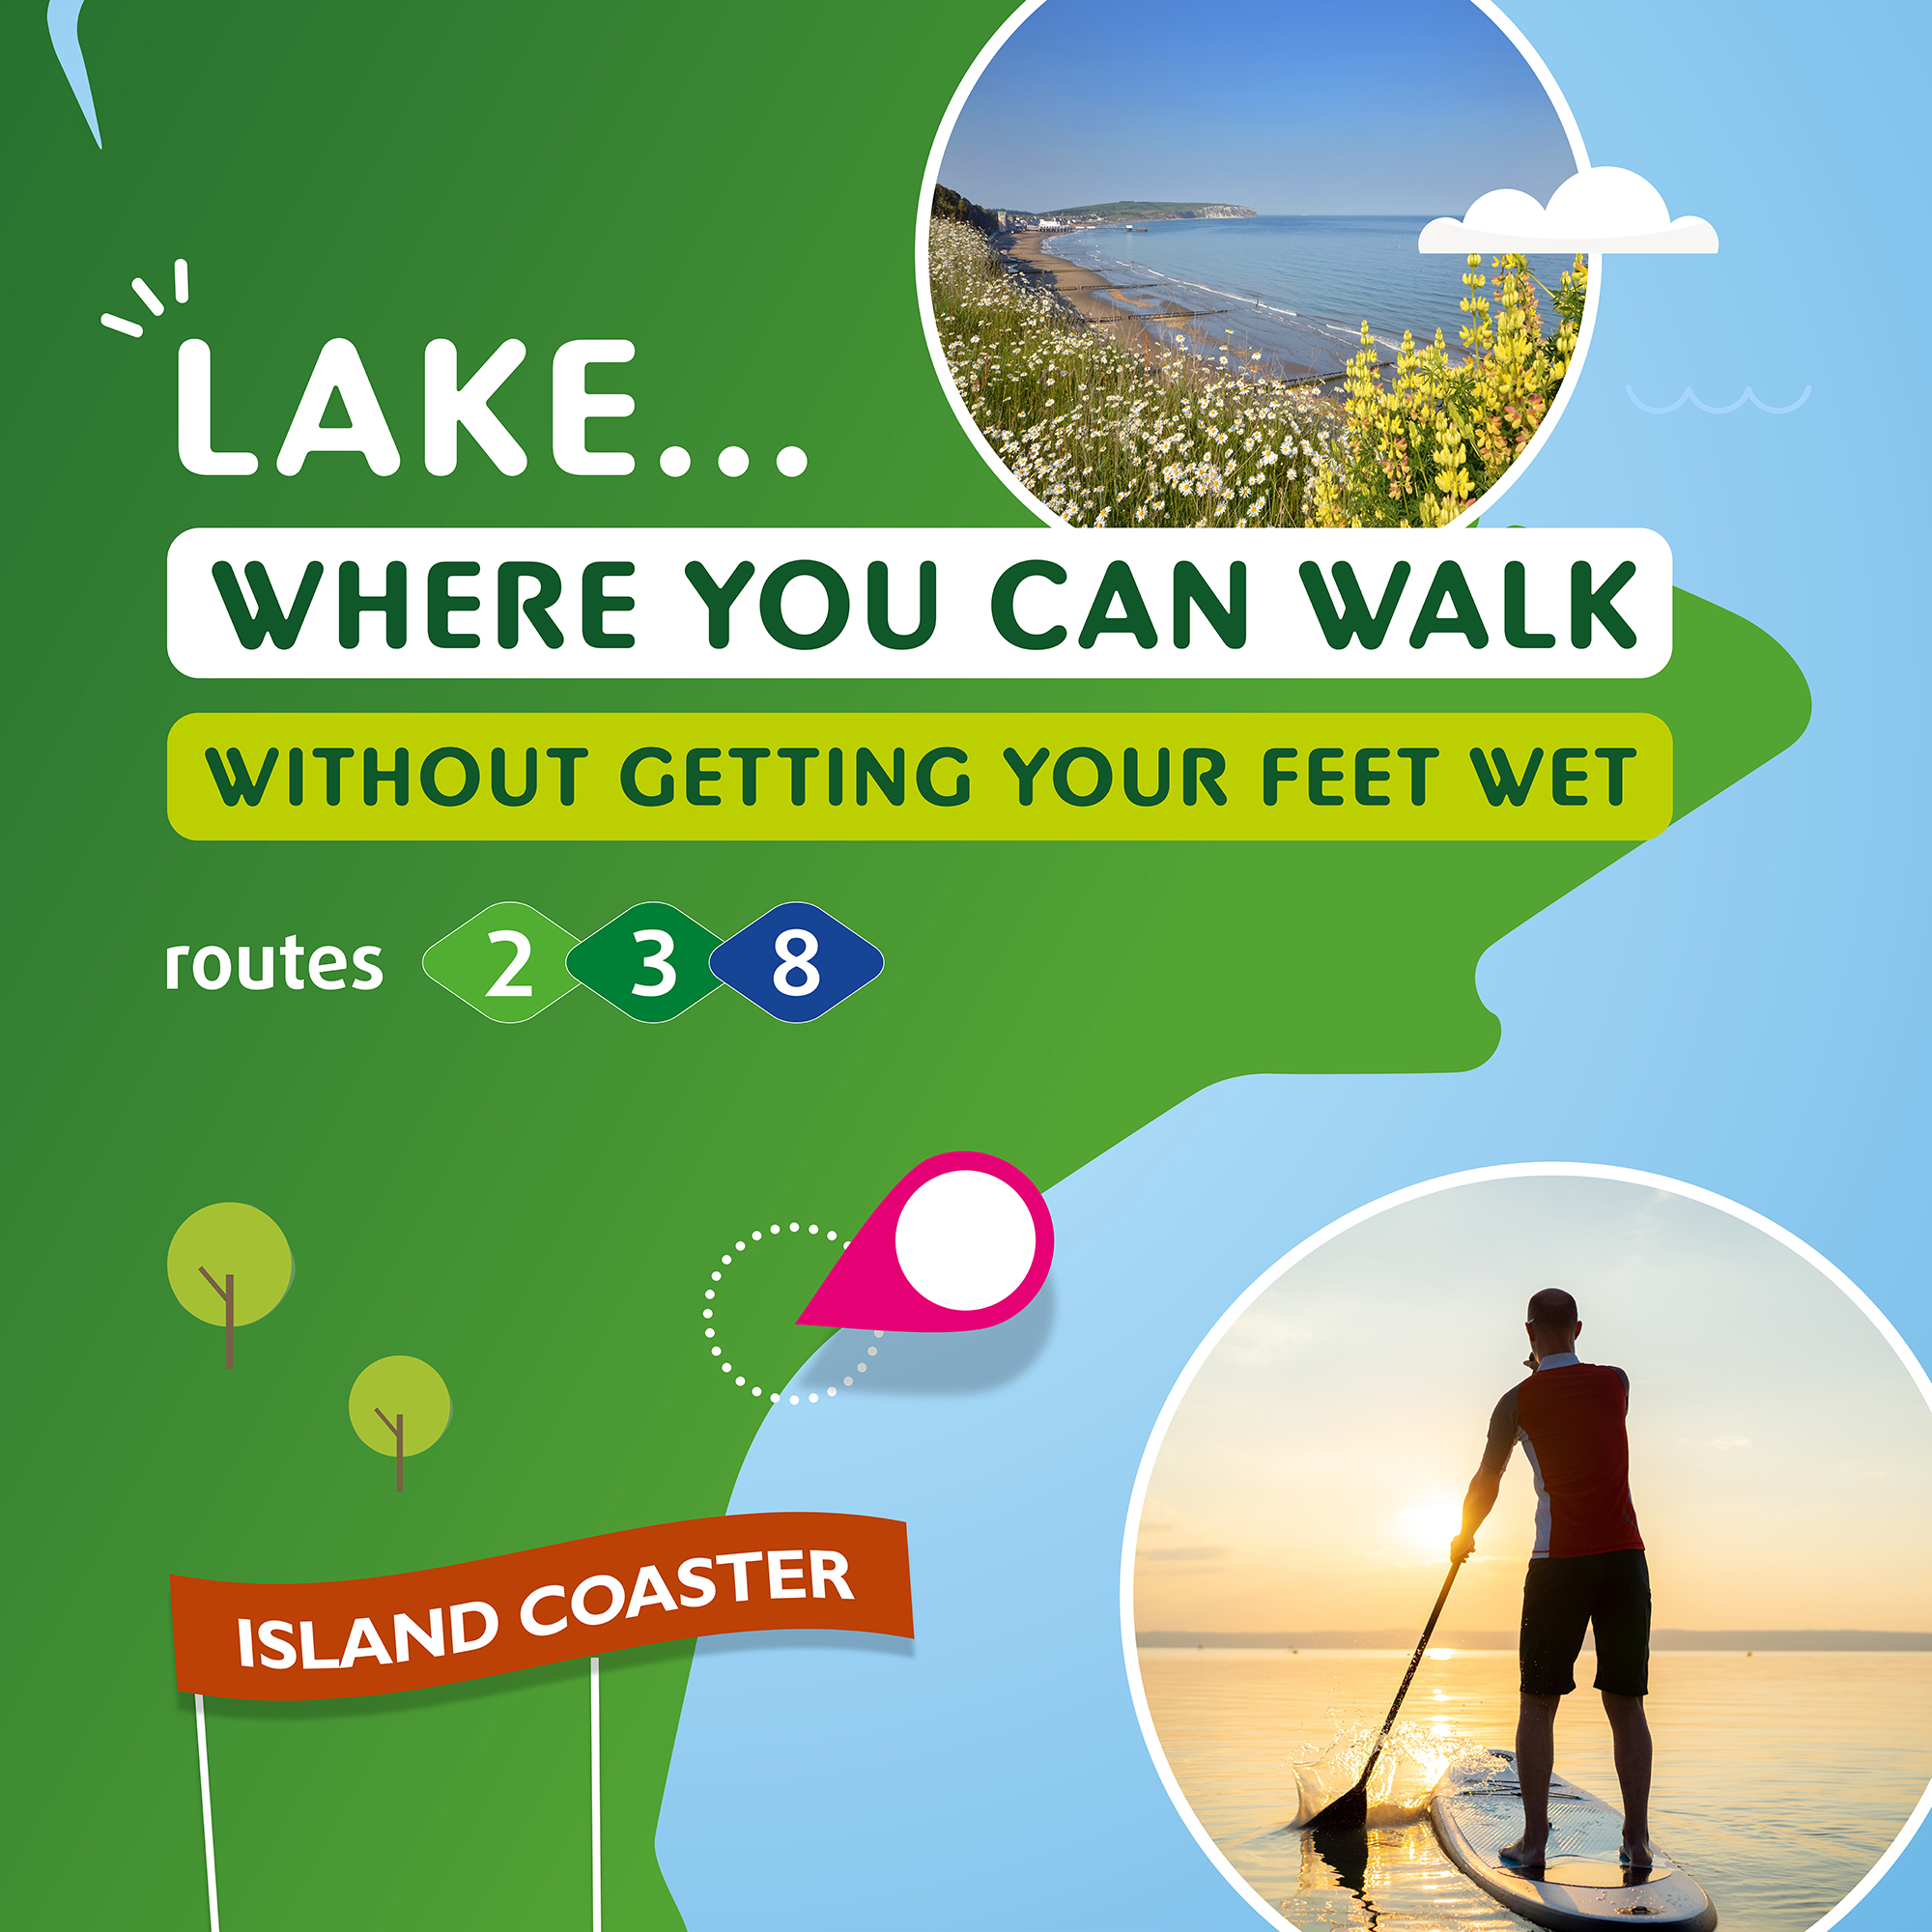 Illustration of Lake where you can walk without getting your feet wet